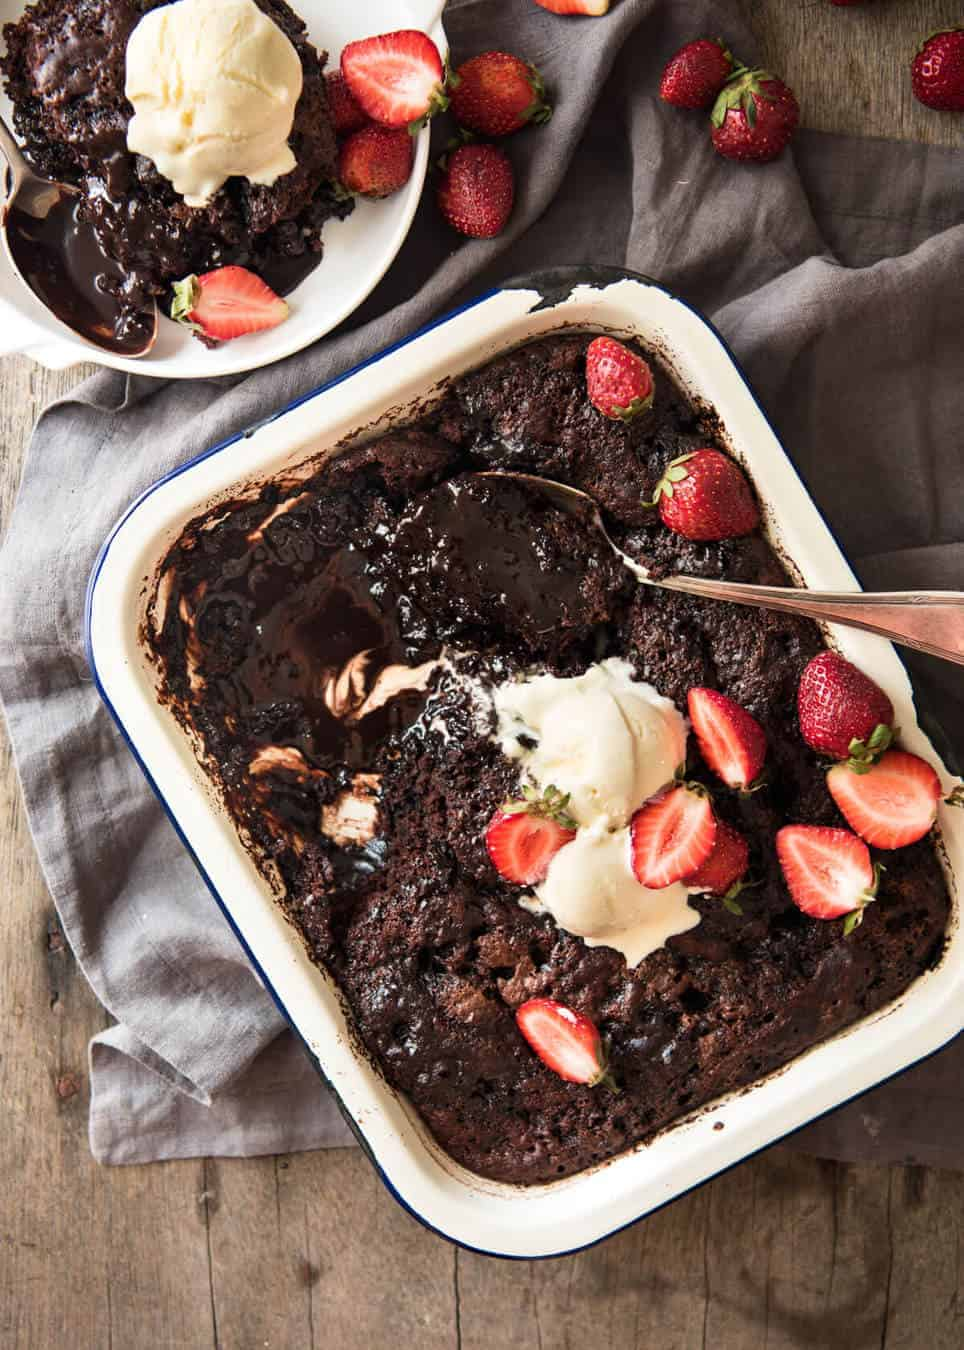 Chocolate Self Saucing Pudding - 1 batter transforms into a moist chocolate cake with a beautiful silky chocolate sauce! 10 minutes active effort. recipetineats.com